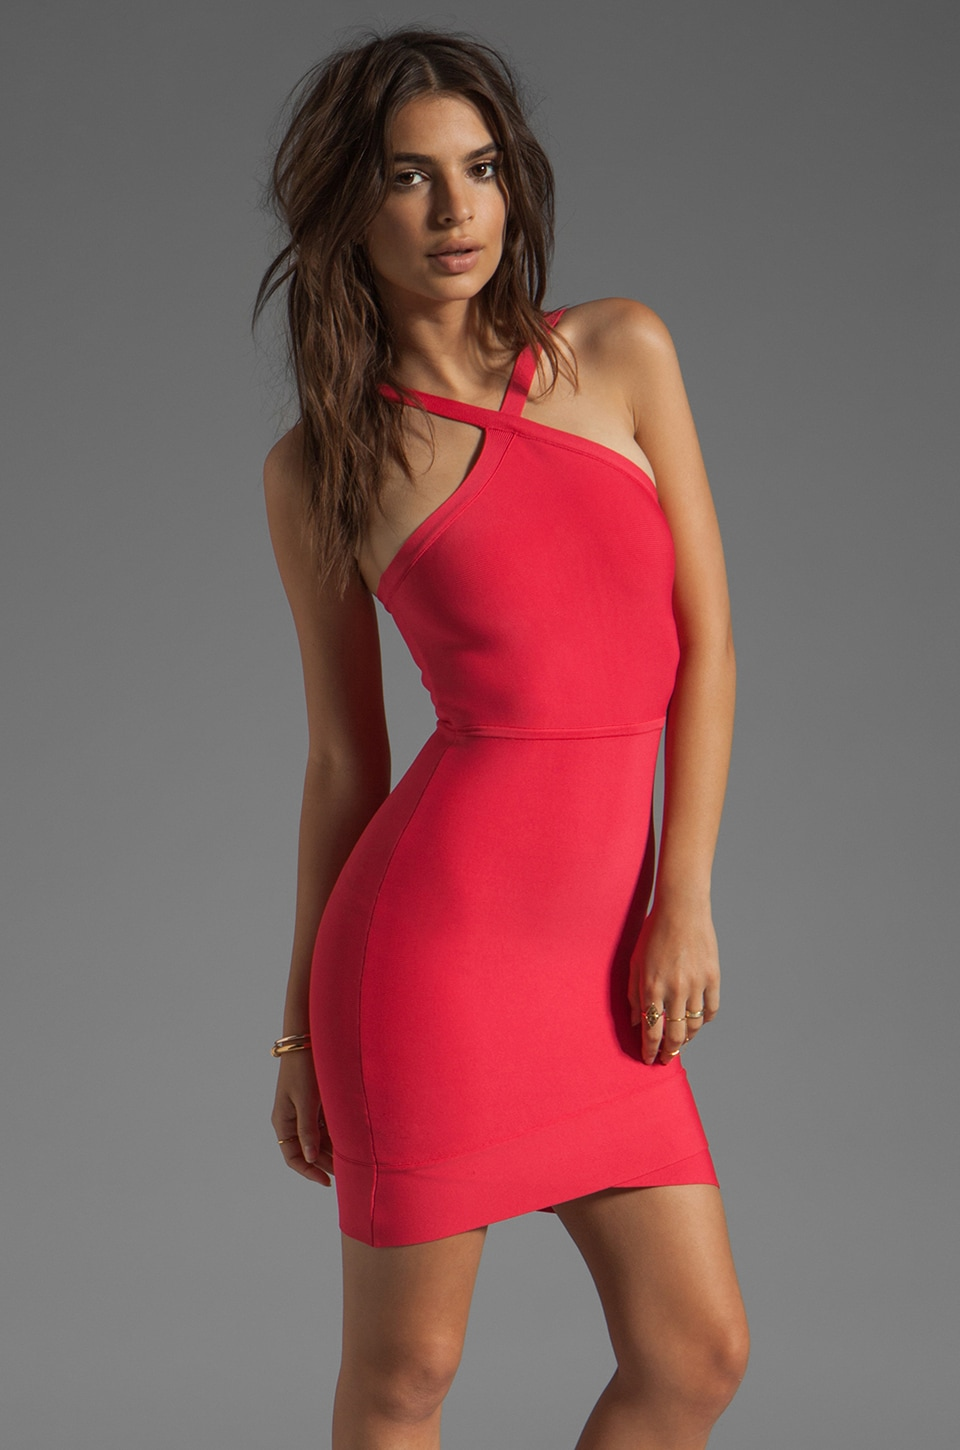 BCBGMAXAZRIA Mini Bodycon Dress in Lipstick Red